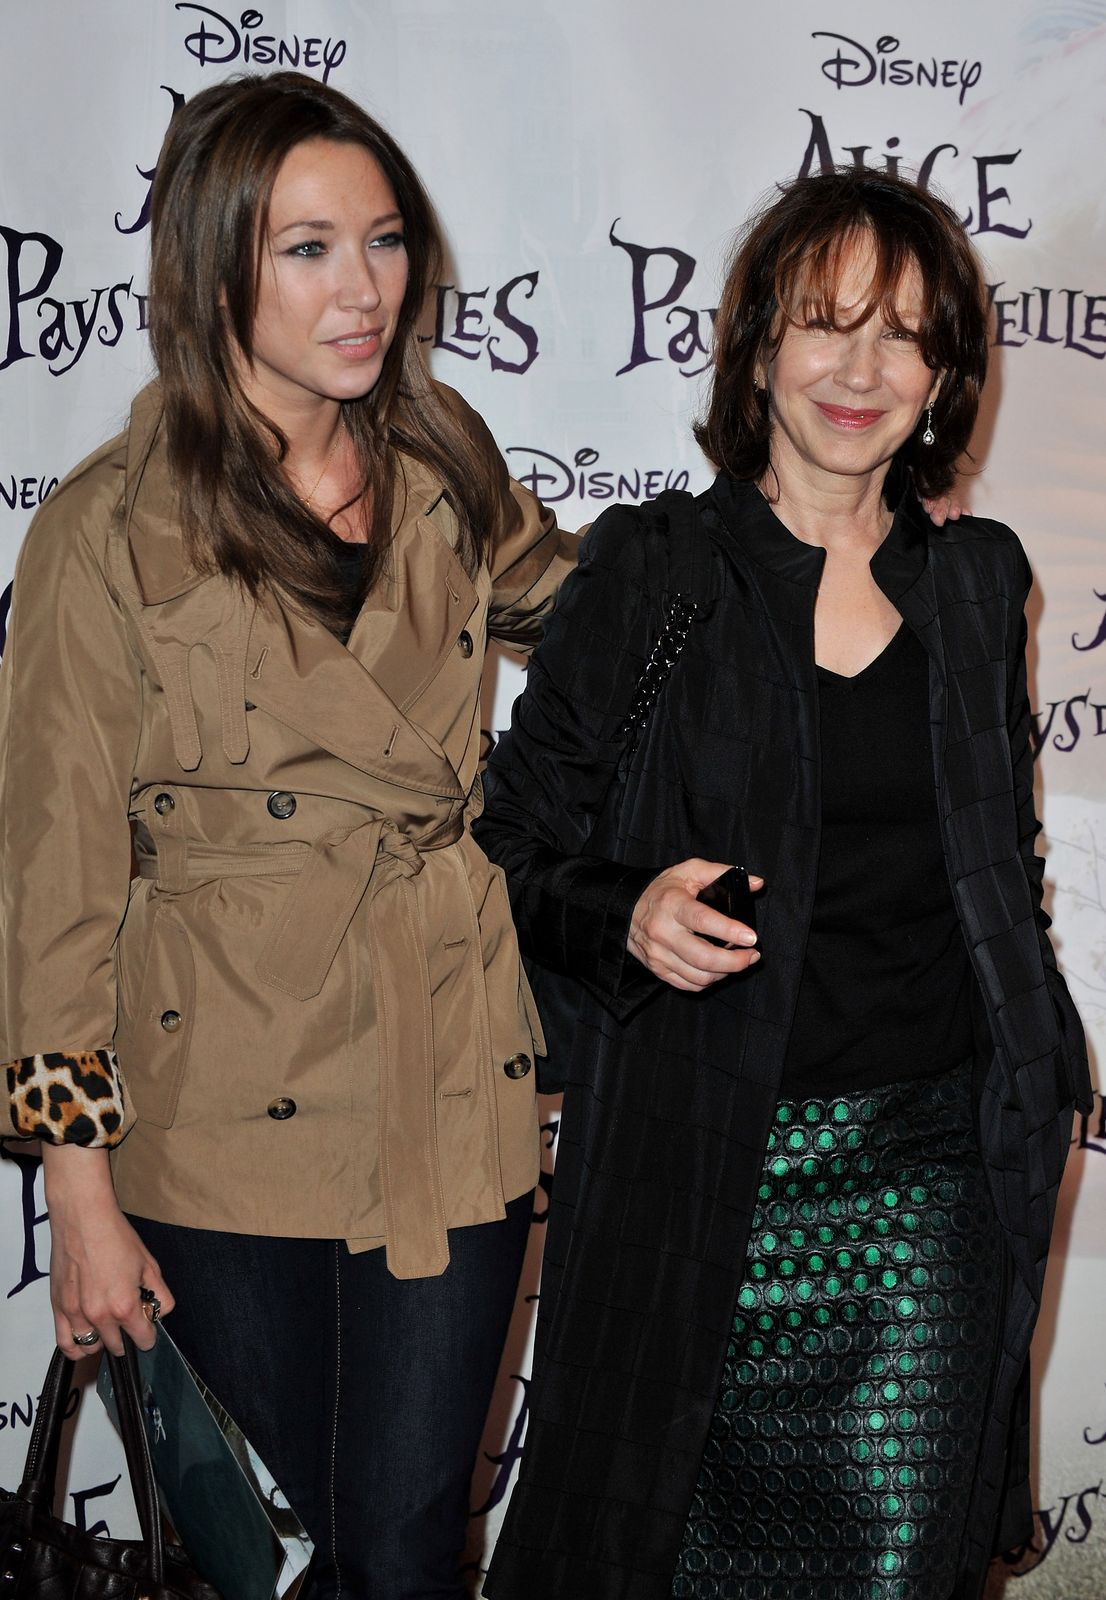 Laura Smet arrive avec sa mère Nathalie Baye au Théâtre Mogador le 15 mars 2010 à Paris, France.  | Photo : Getty Images